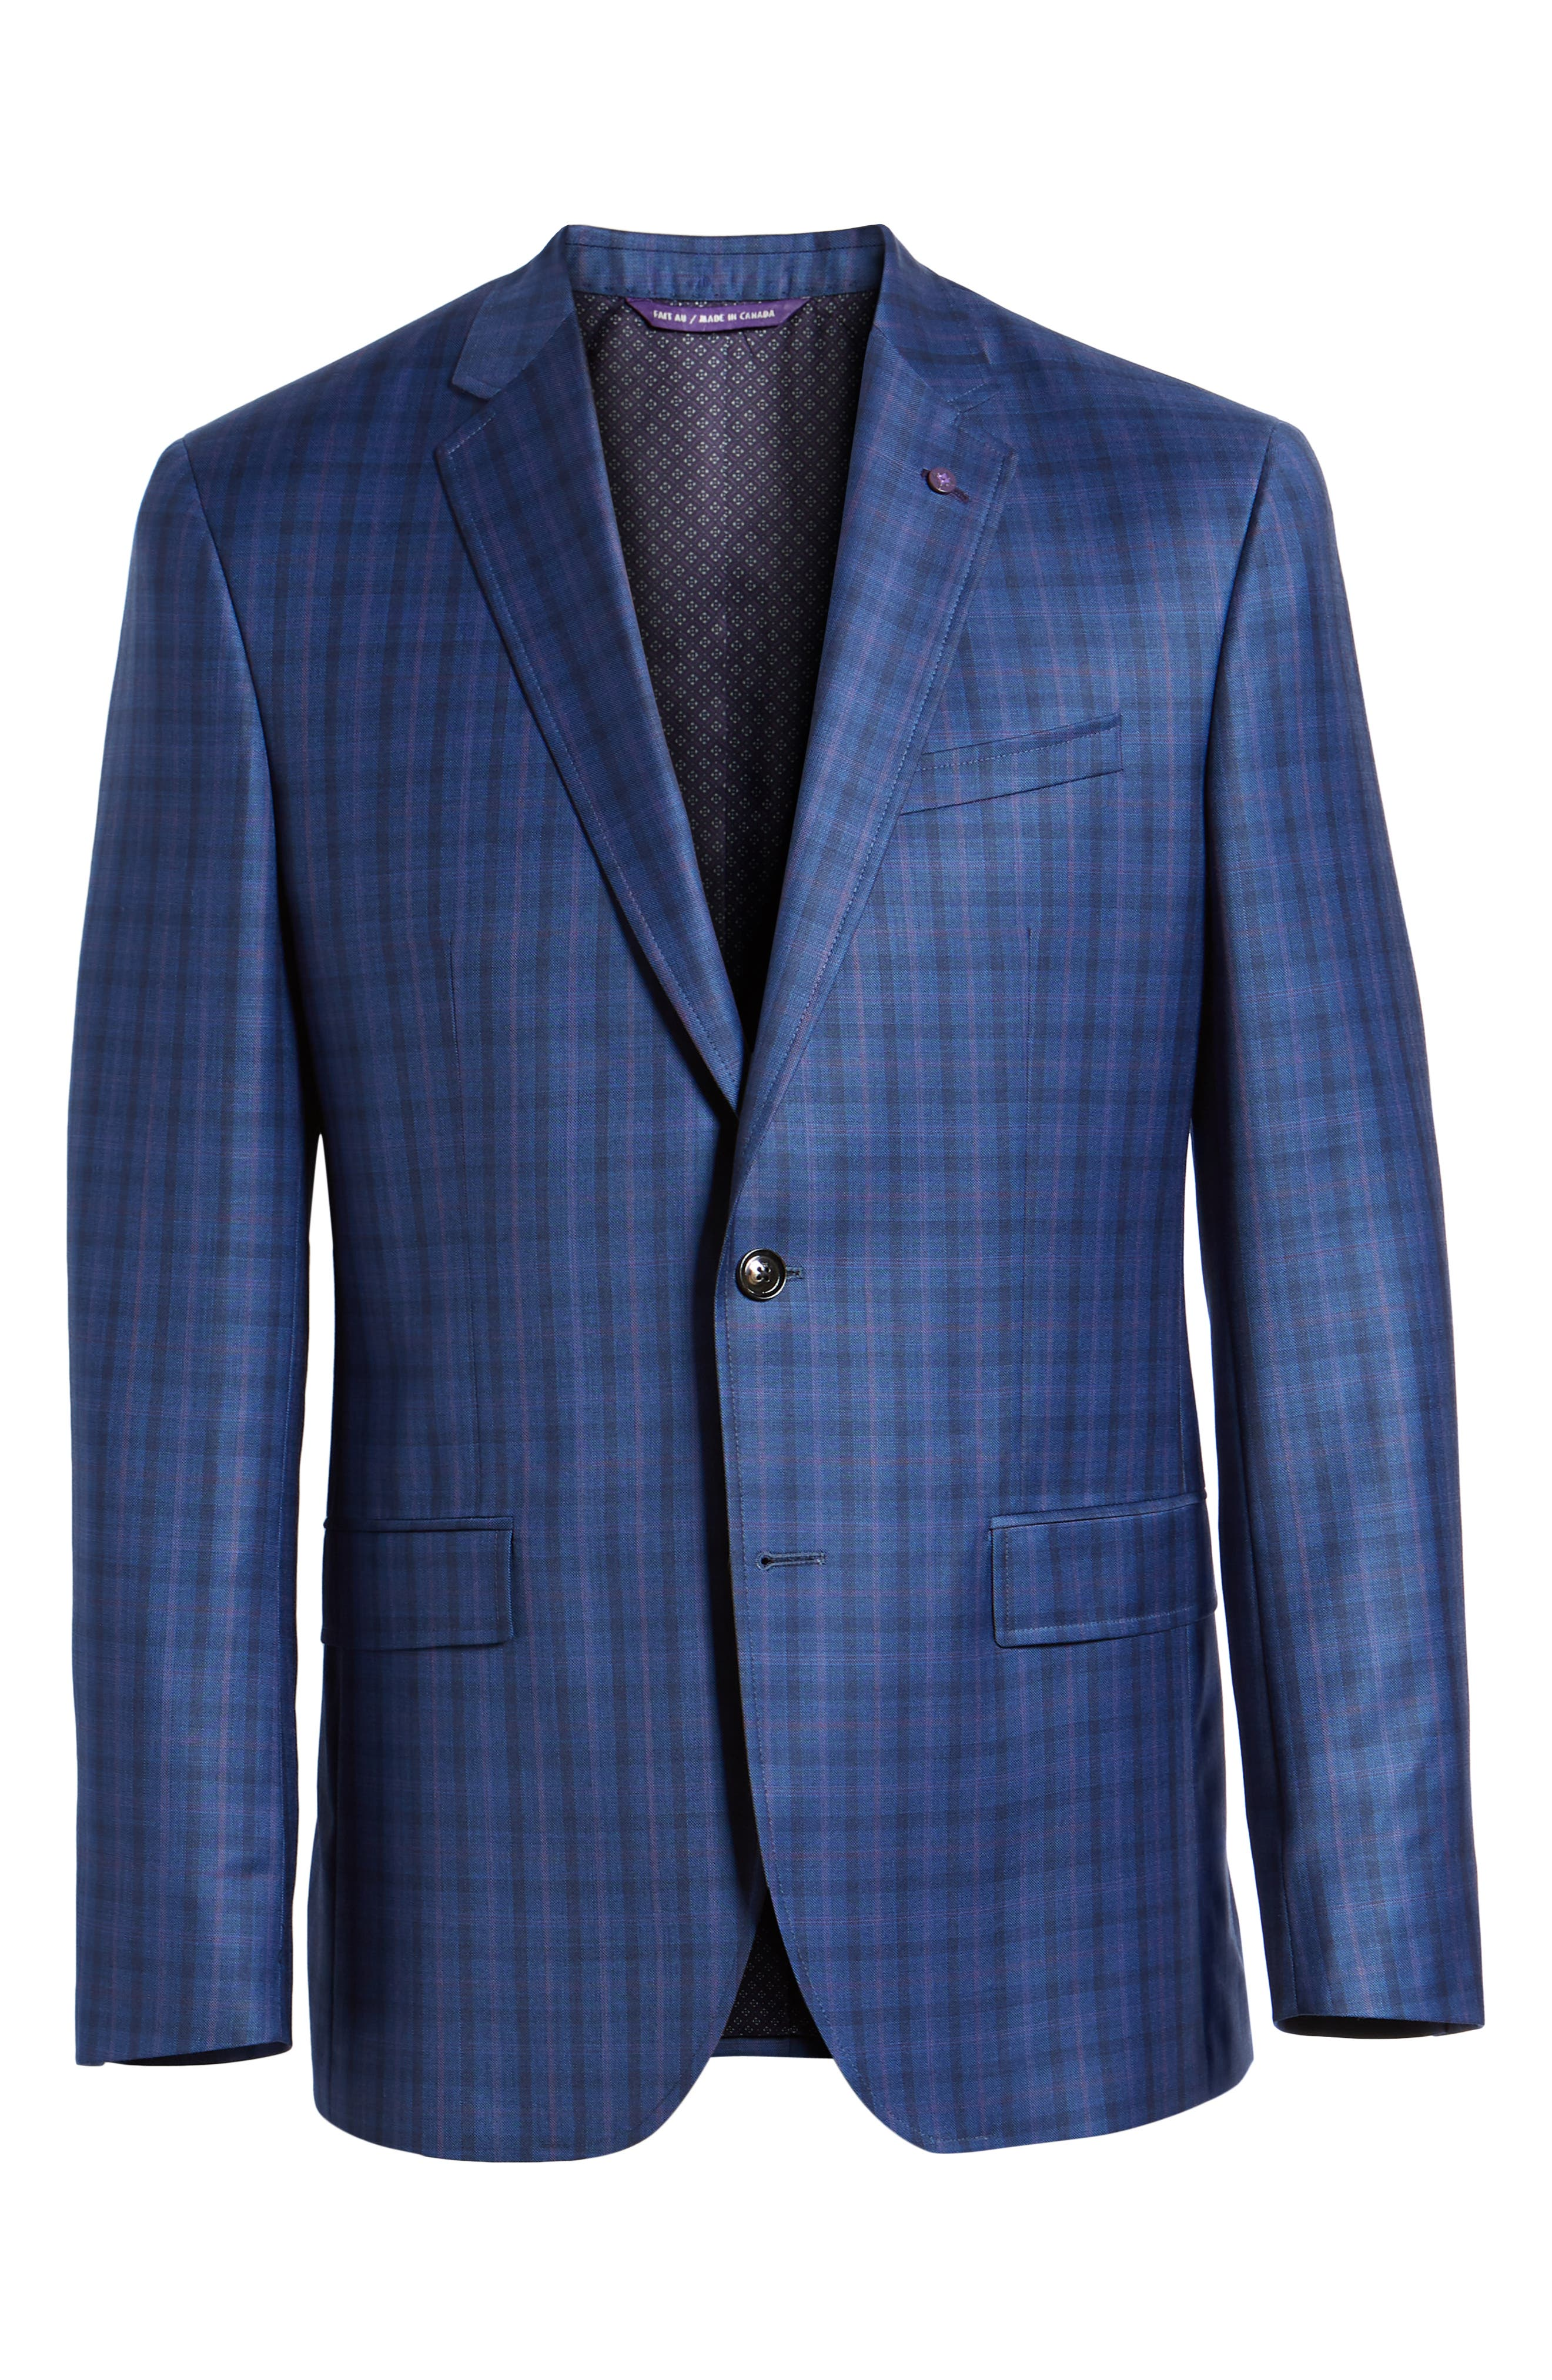 Jay Trim Fit Windowpane Wool Sport Coat,                             Alternate thumbnail 5, color,                             400